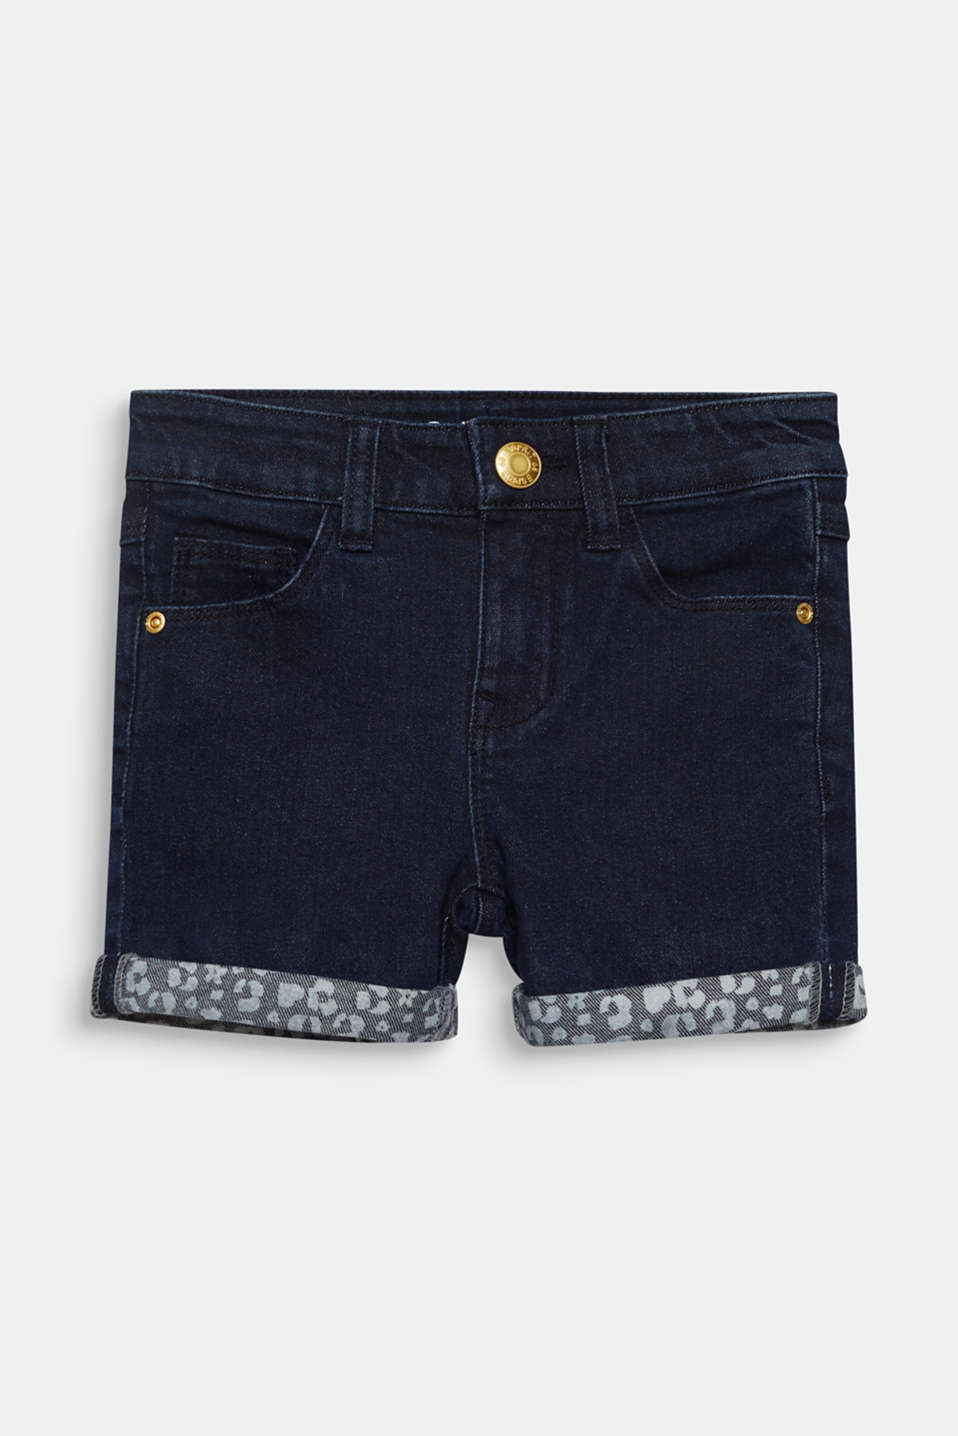 Esprit - Dark-Denim-Shorts mit Turn-ups, Verstellbund